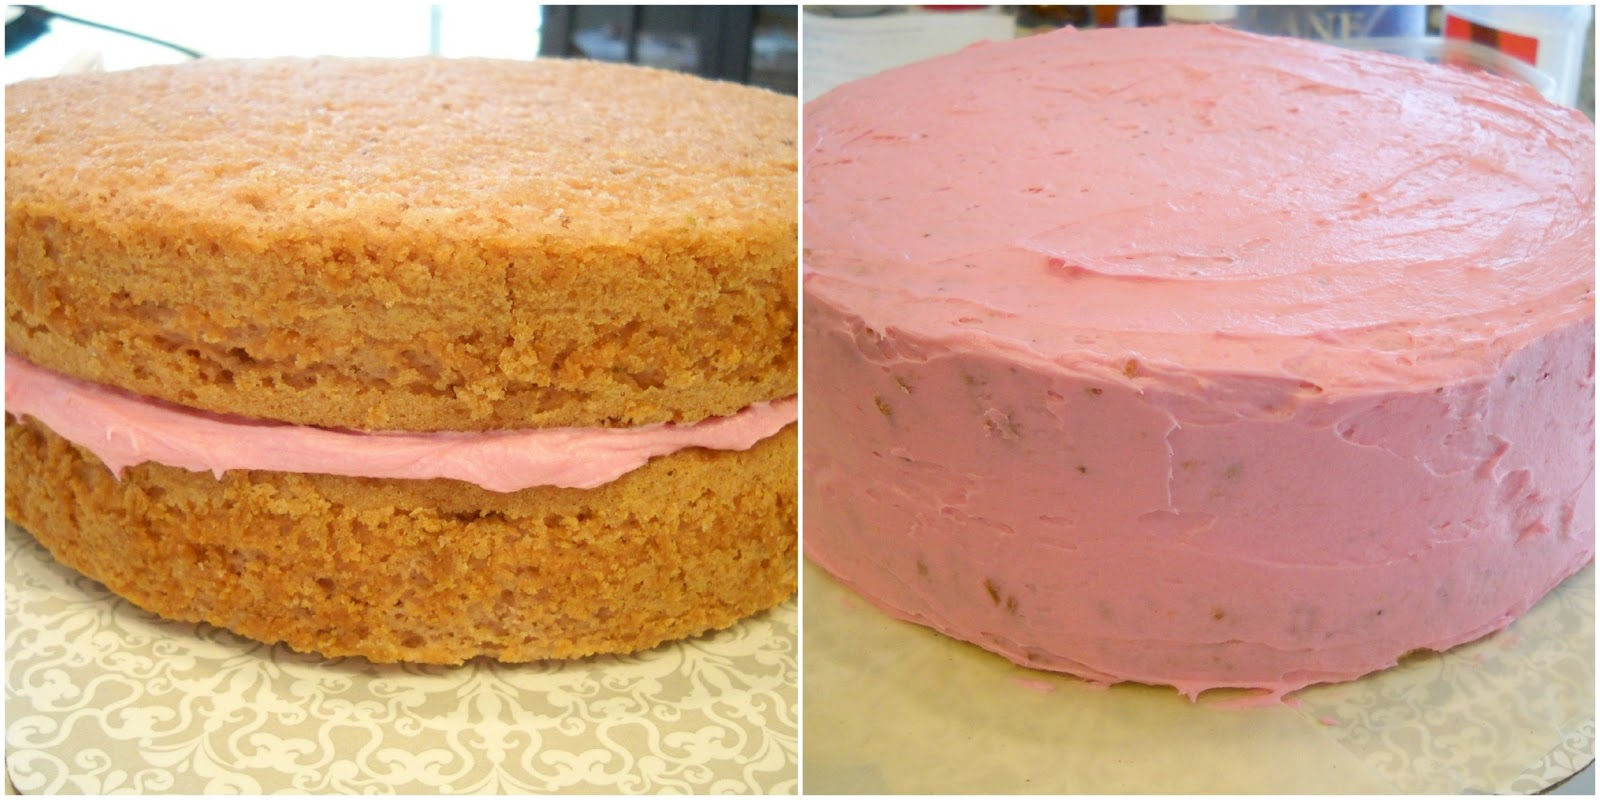 Strawberry daiquiri cake recipes with liquor